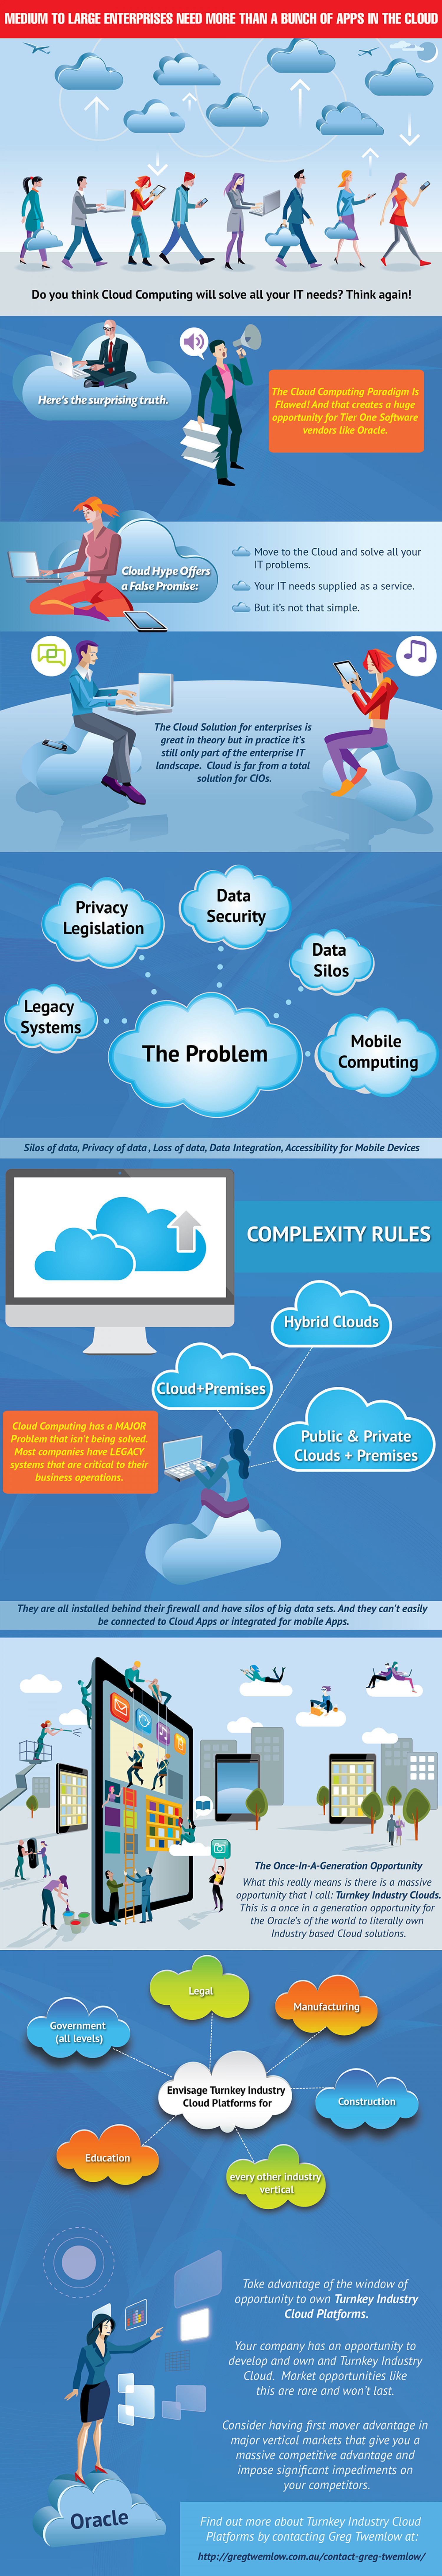 Medium t Large Enterprises Need More Than a Bunch of Apps in the Cloud Infographic